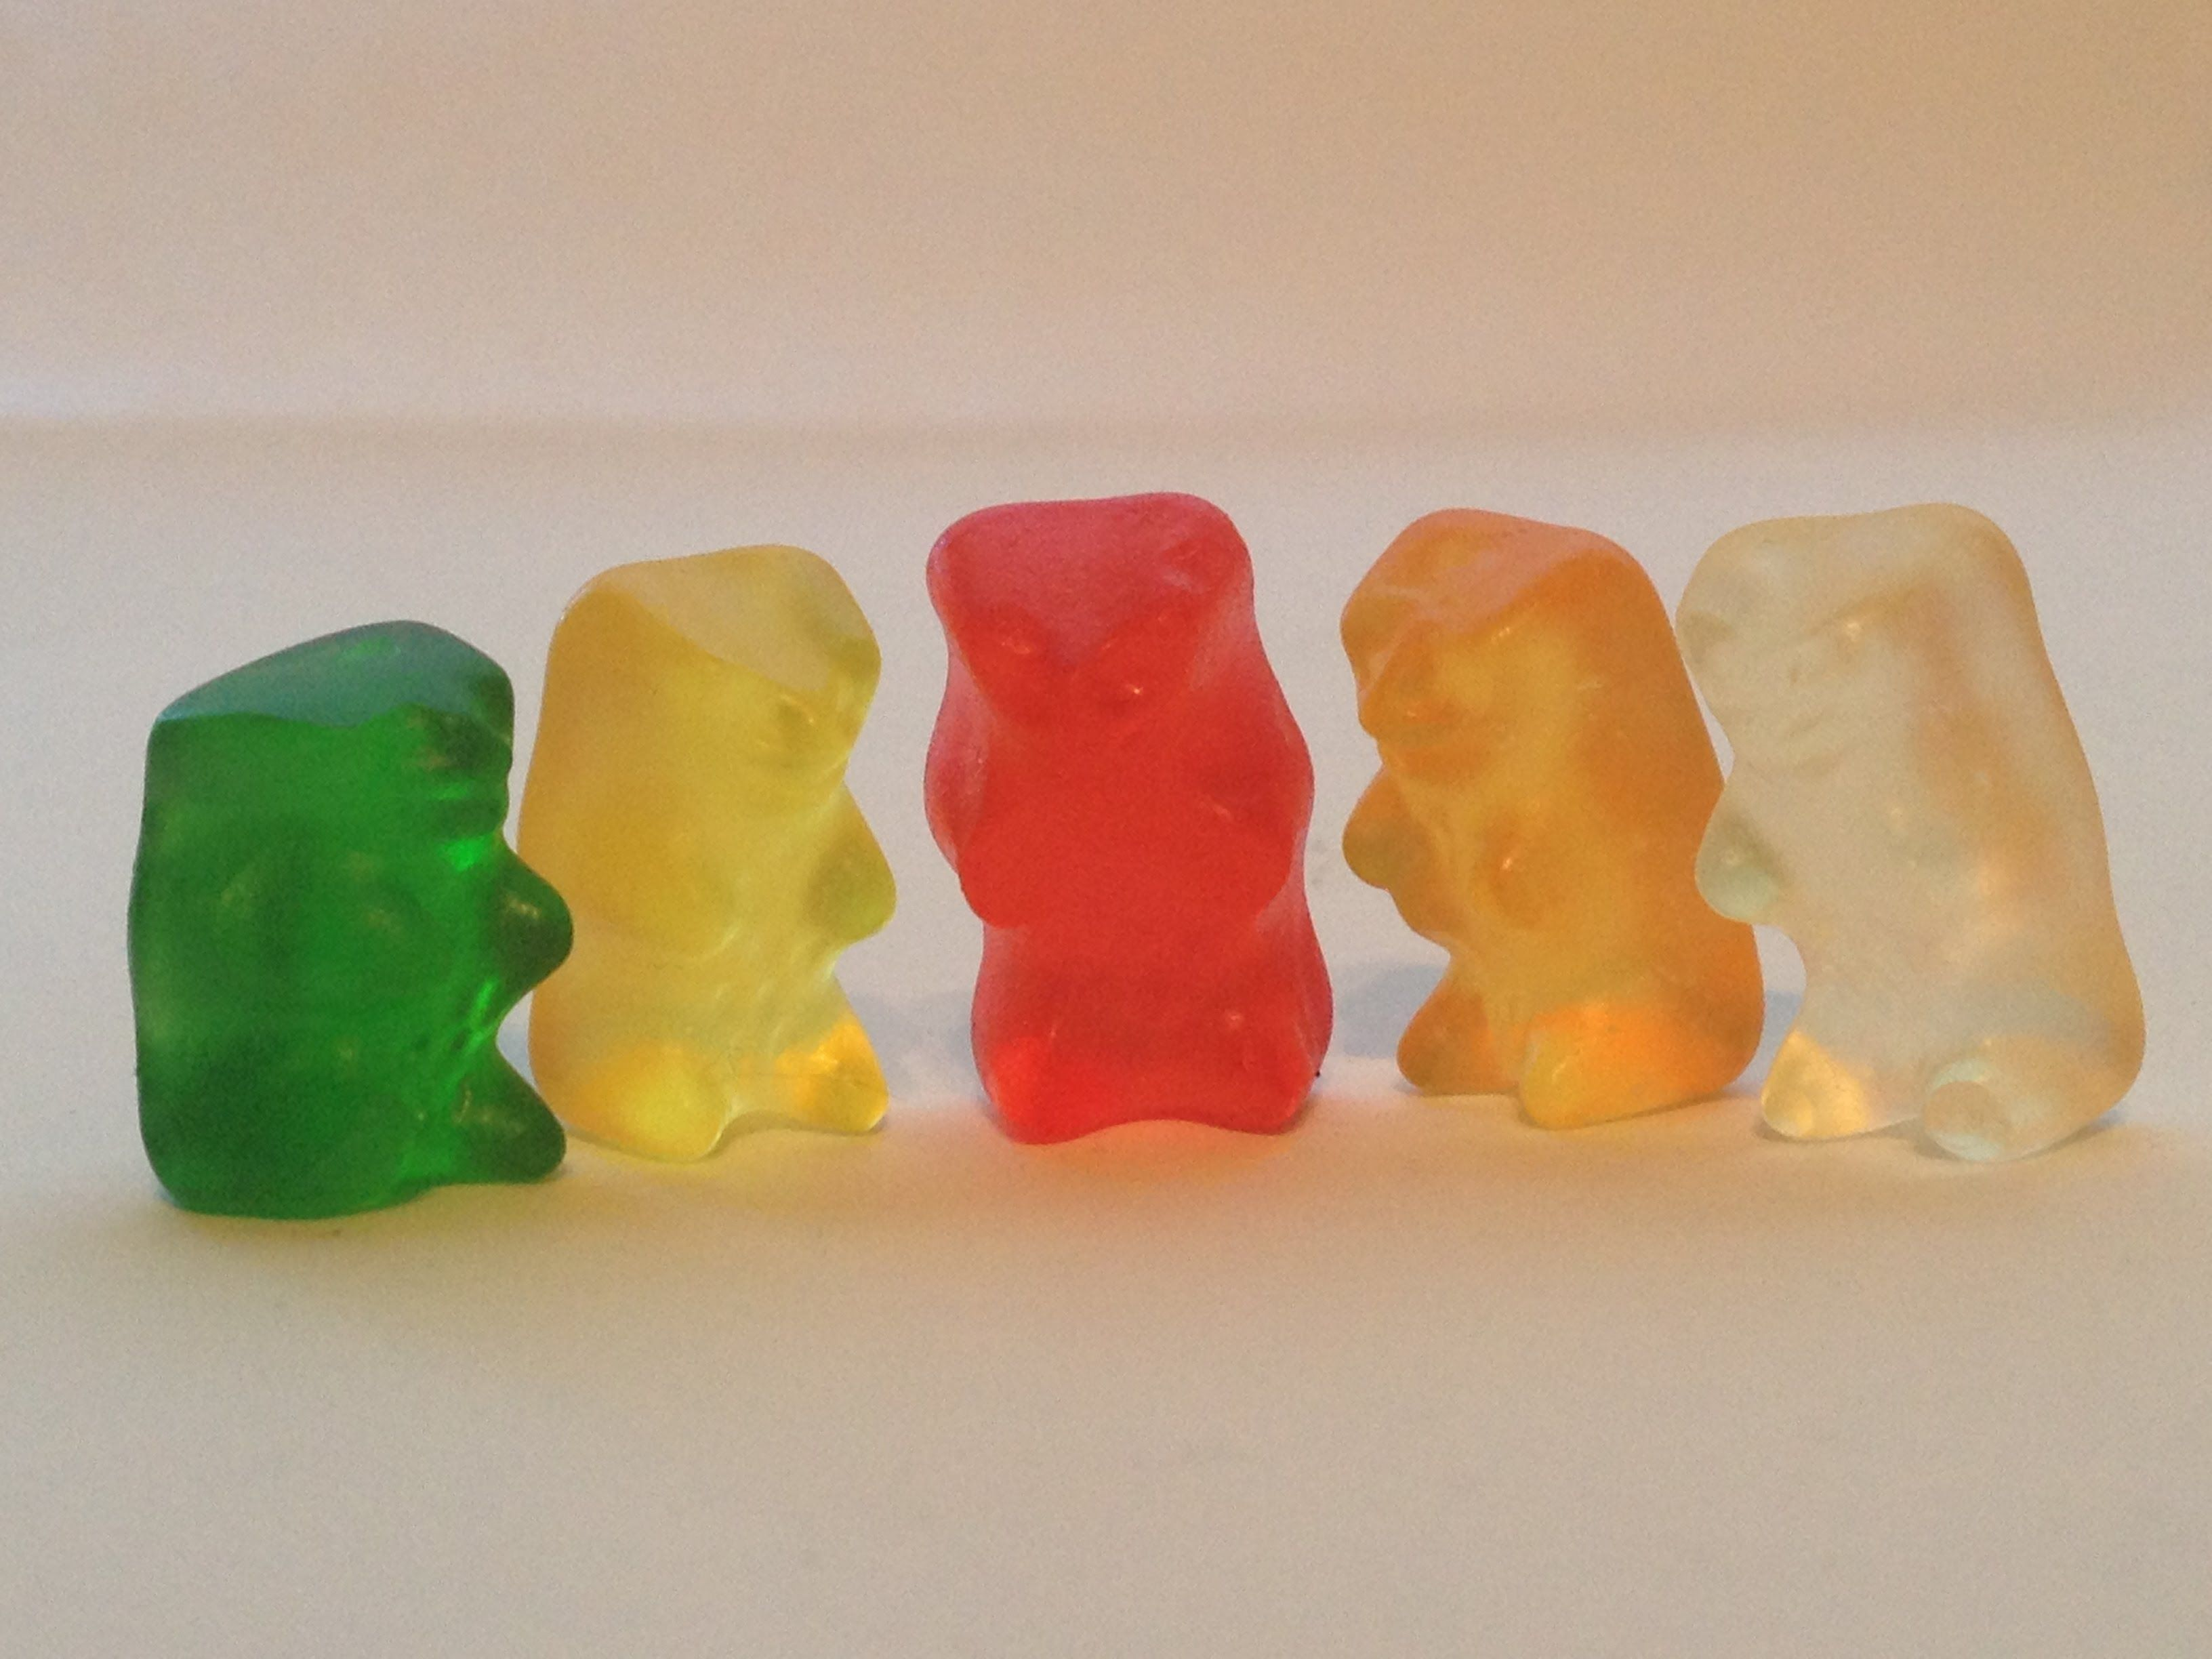 Gummy Bear Music Video! #gummybear #gummy #candy #colorful #silly #goofy #lol #funny